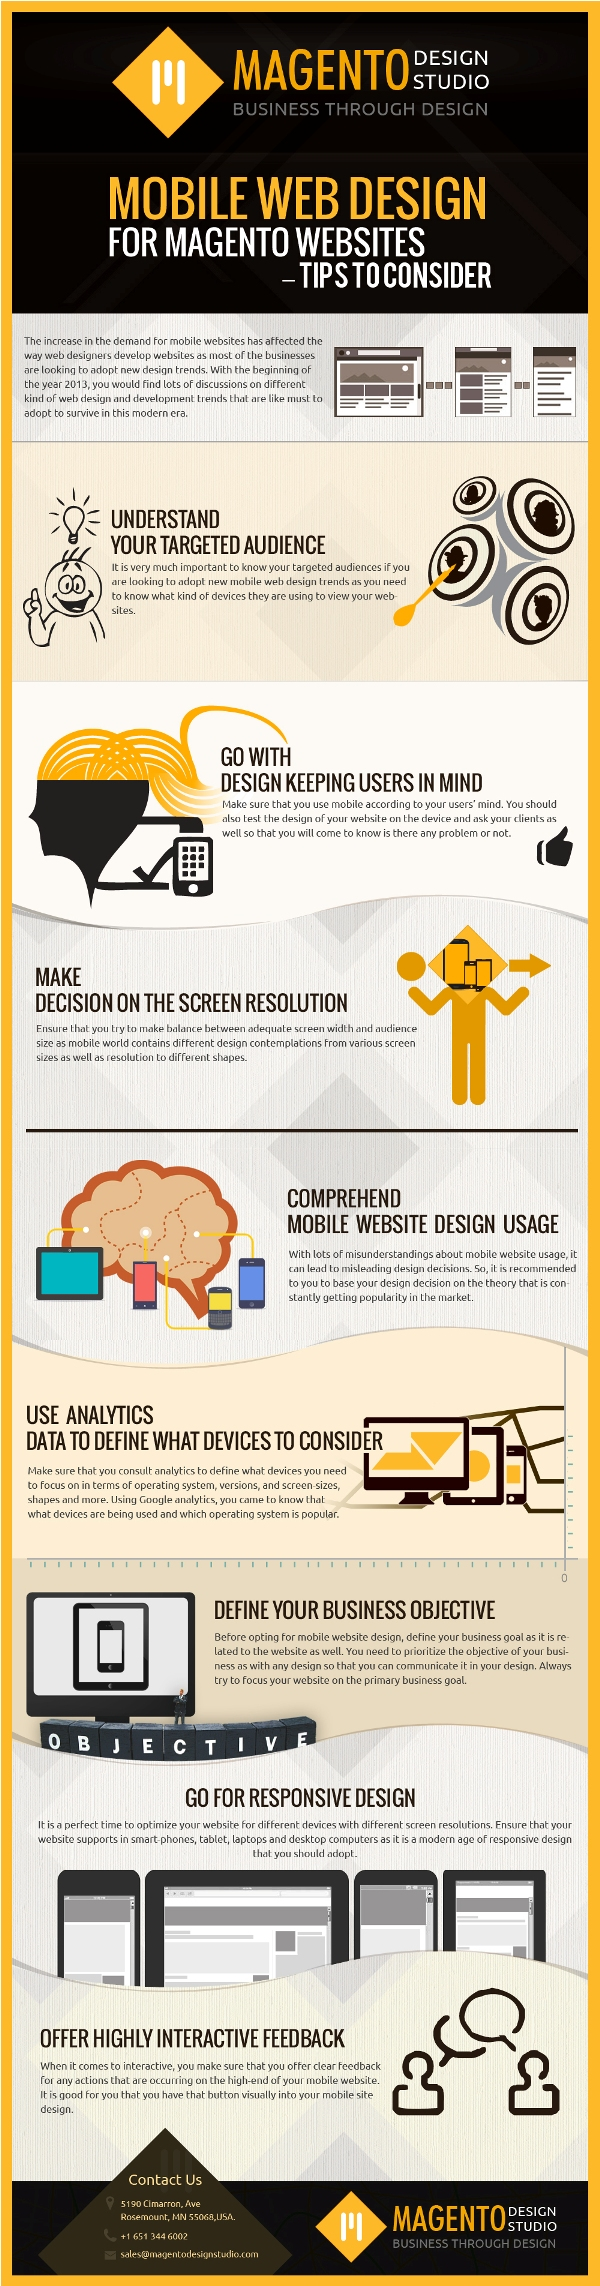 mobile-web-design-for-magento-websites--tips-to-consider_522d71297b43a.jpg 2